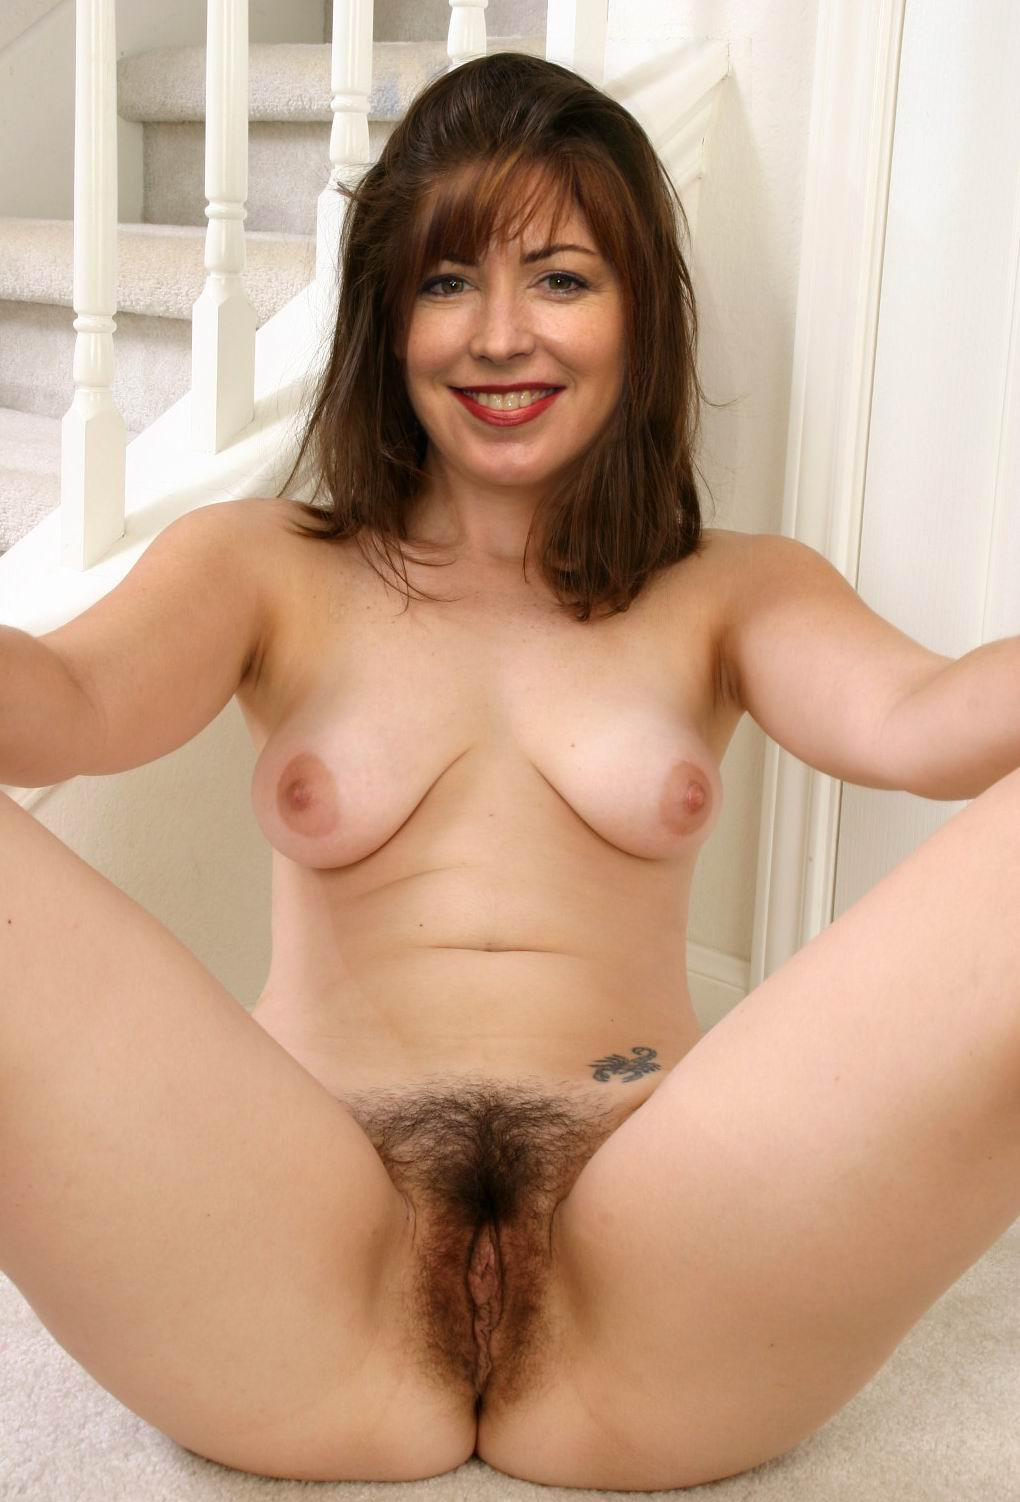 Mature eastern european women naked